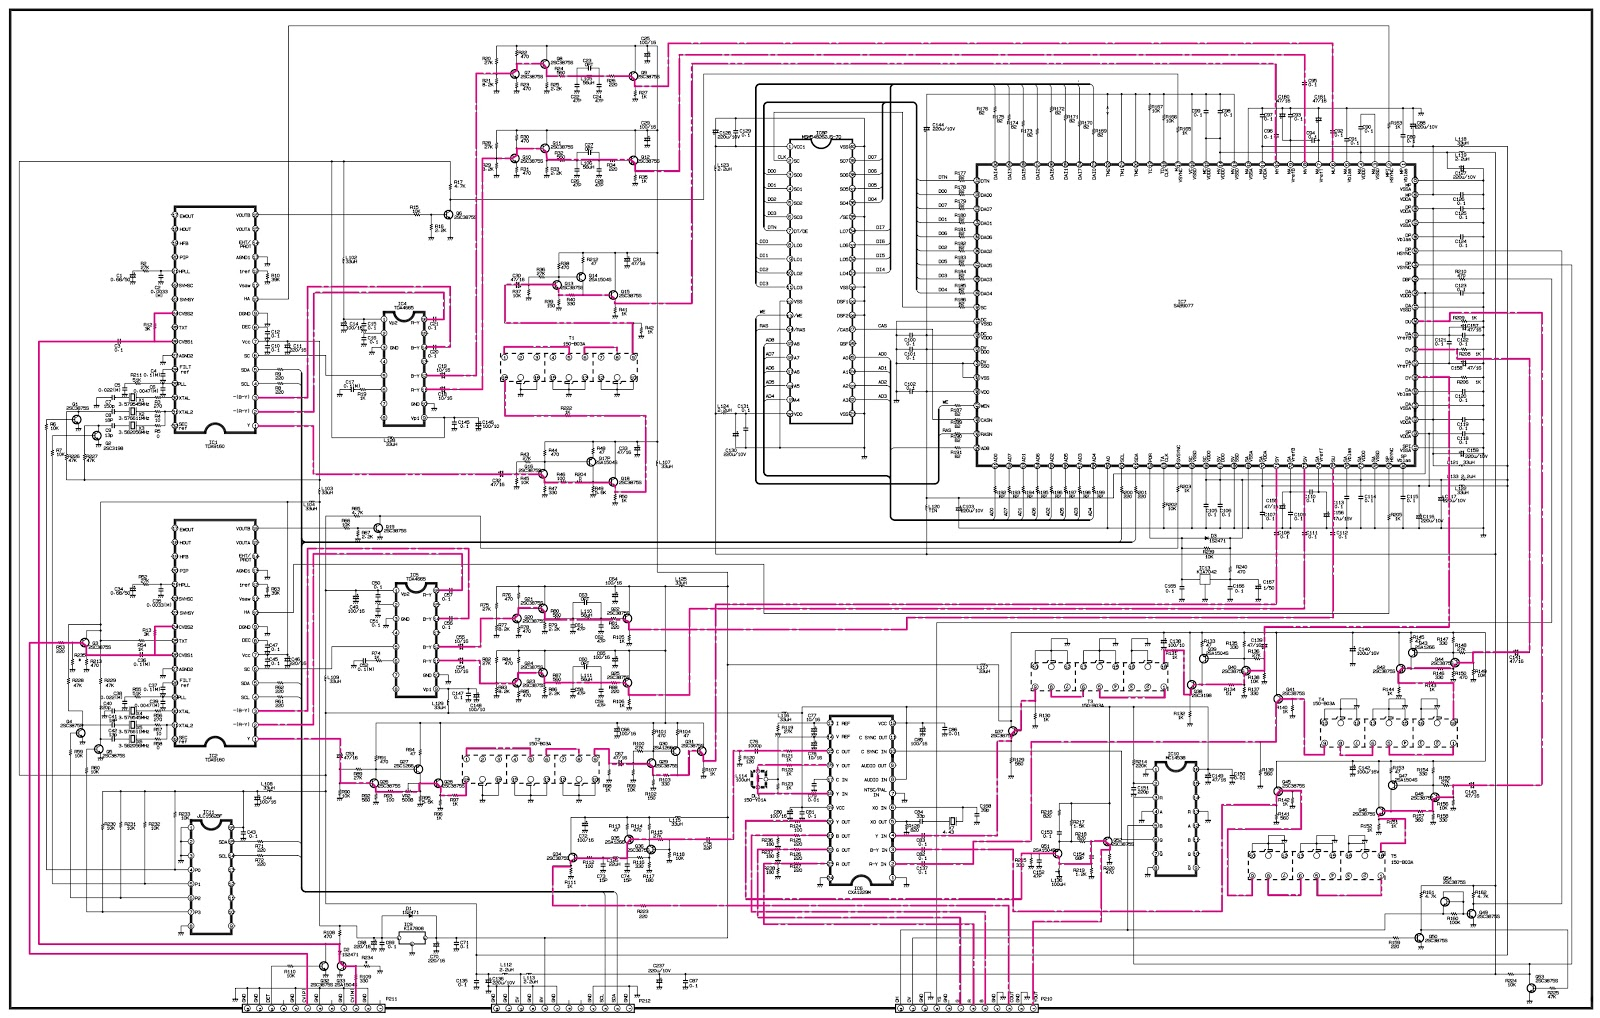 medium resolution of pip and vcr wiring diagram wiring diagram jvc car stereo wiring diagram jvc vcr wiring diagram